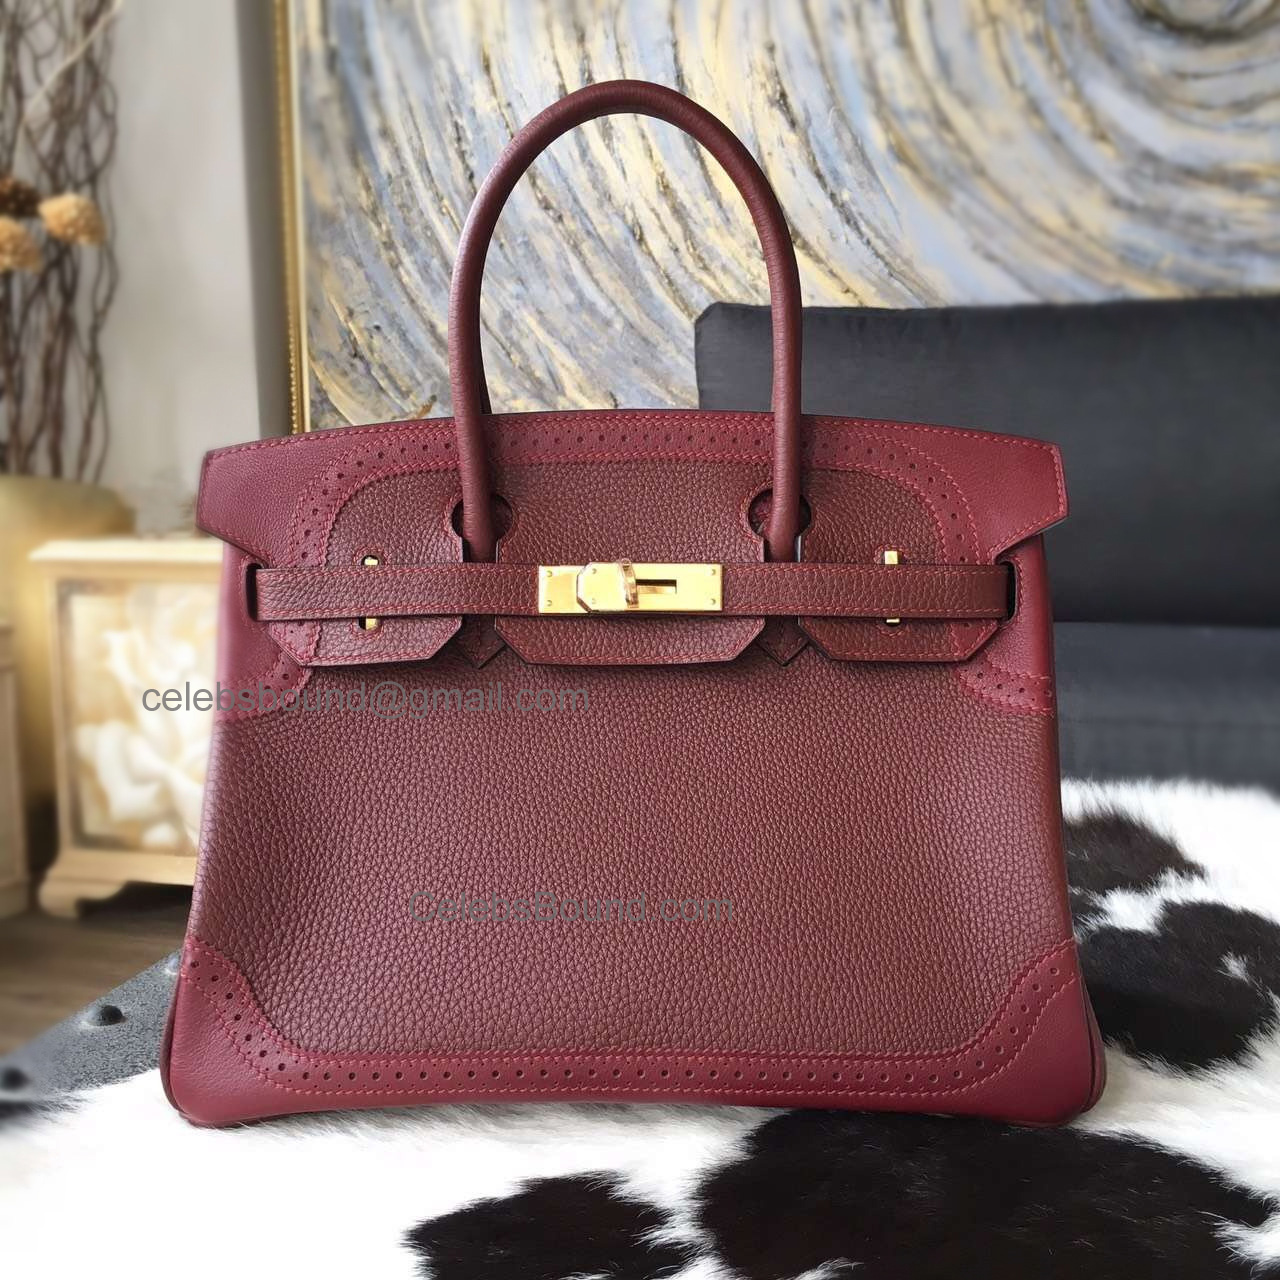 Hand Stitched Hermes Birkin 30 Ghillies Bag in ck55 Rouge H Calfskin GHW